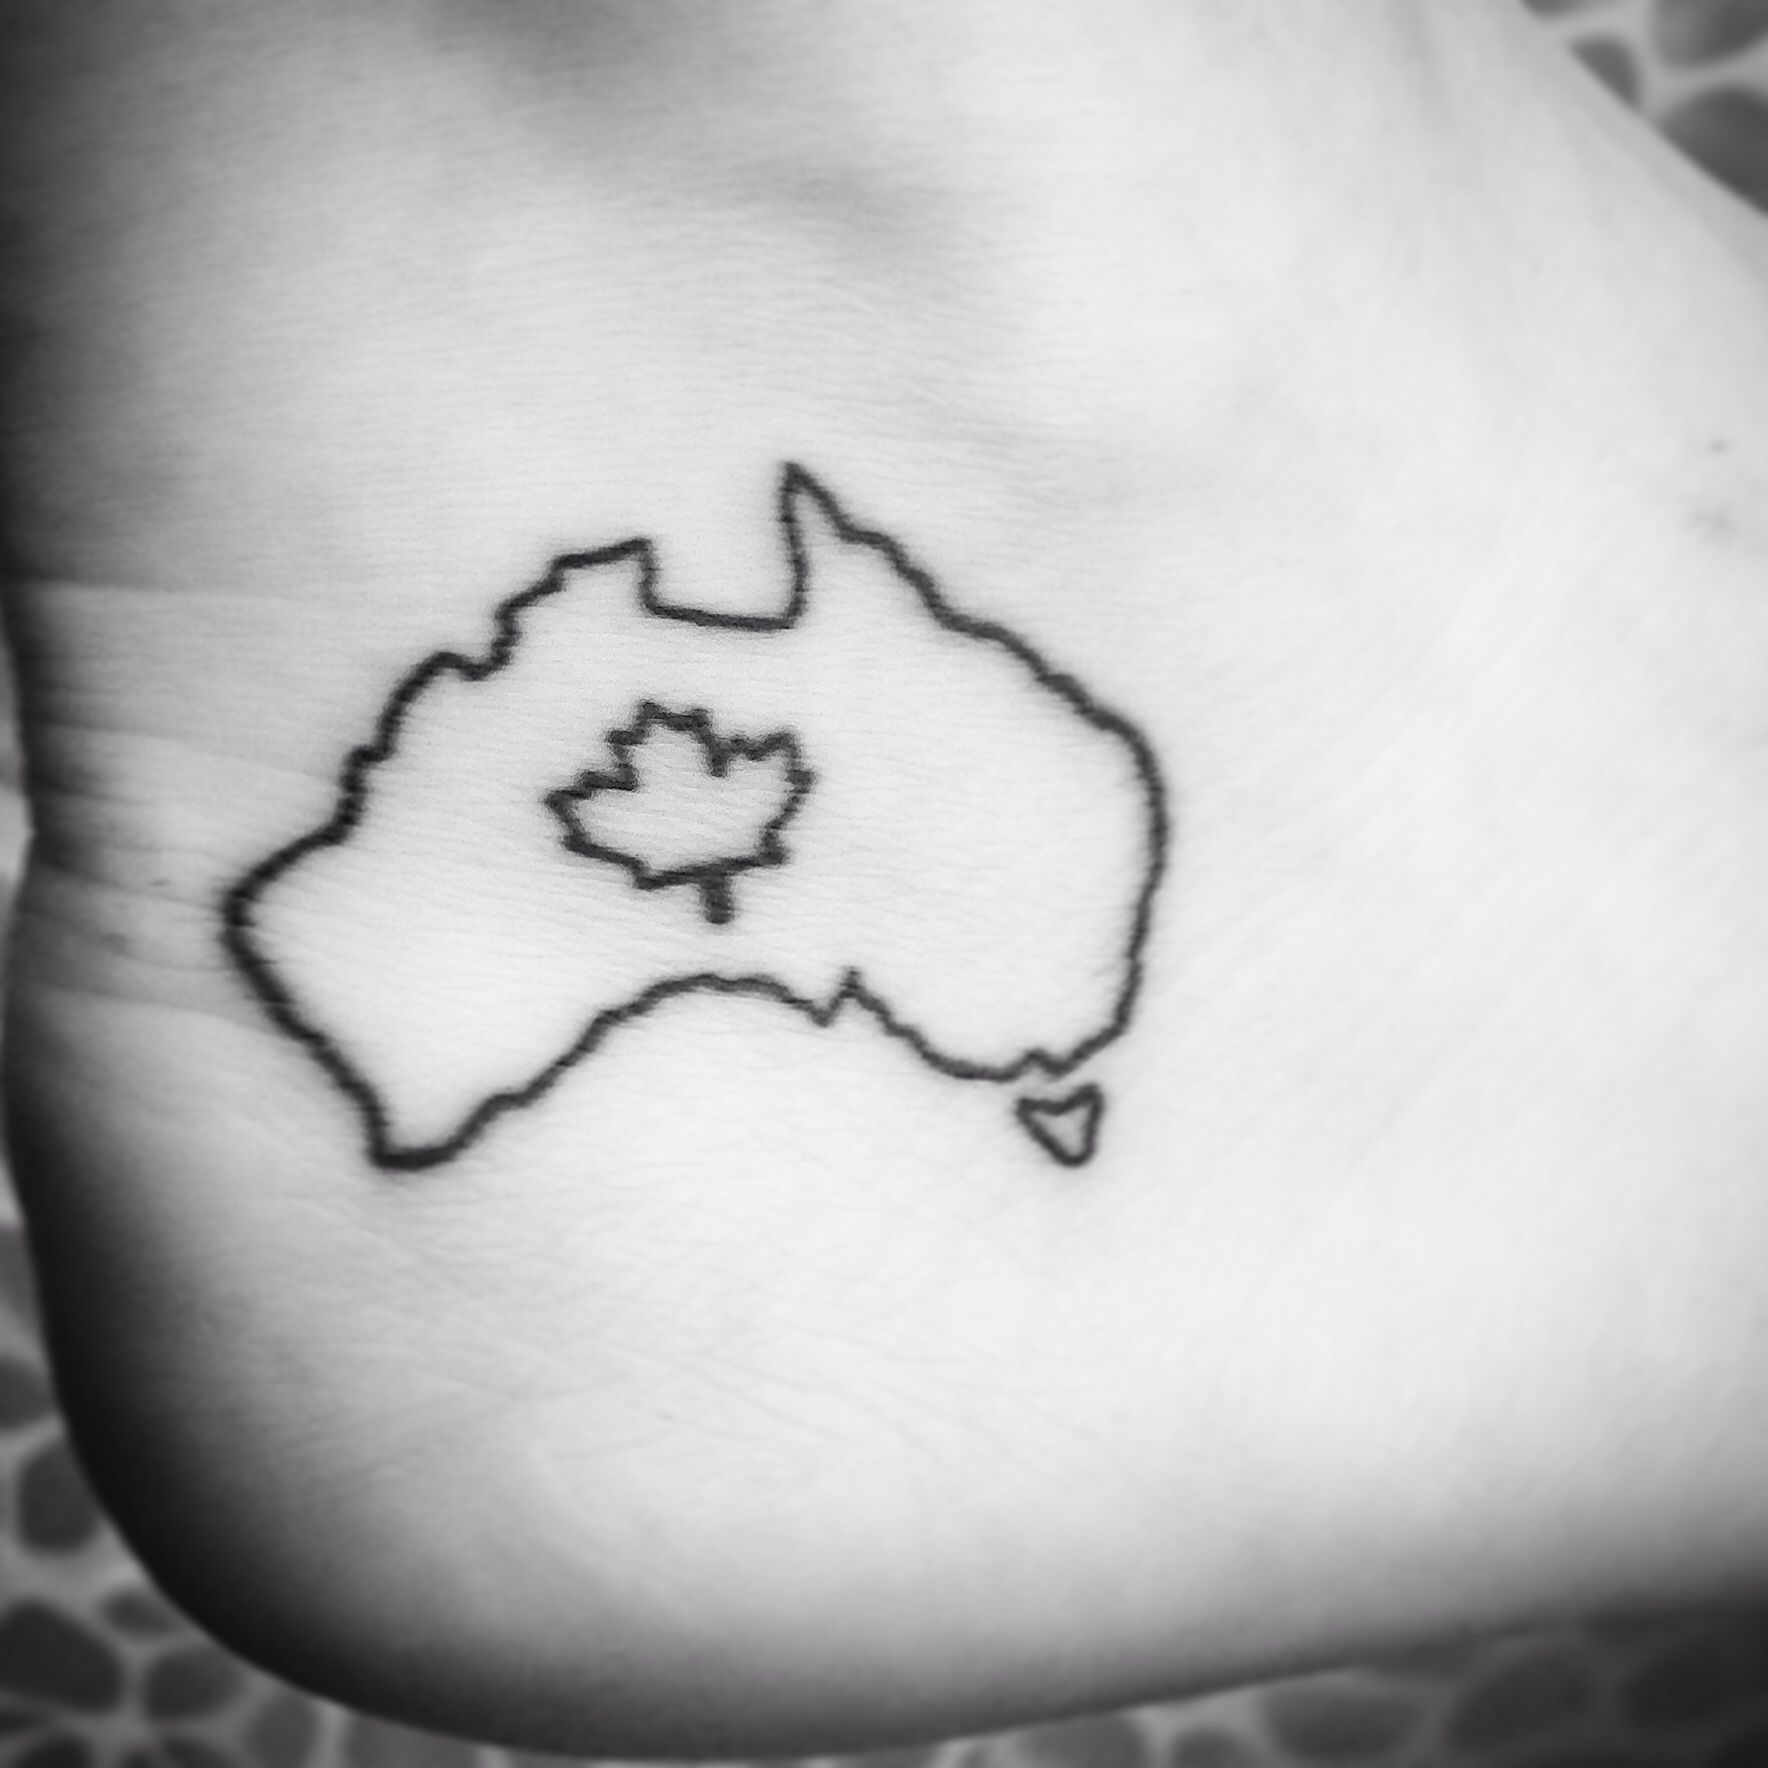 Half Australian Half Canadian Small Tattoo On My Ankle One Of A